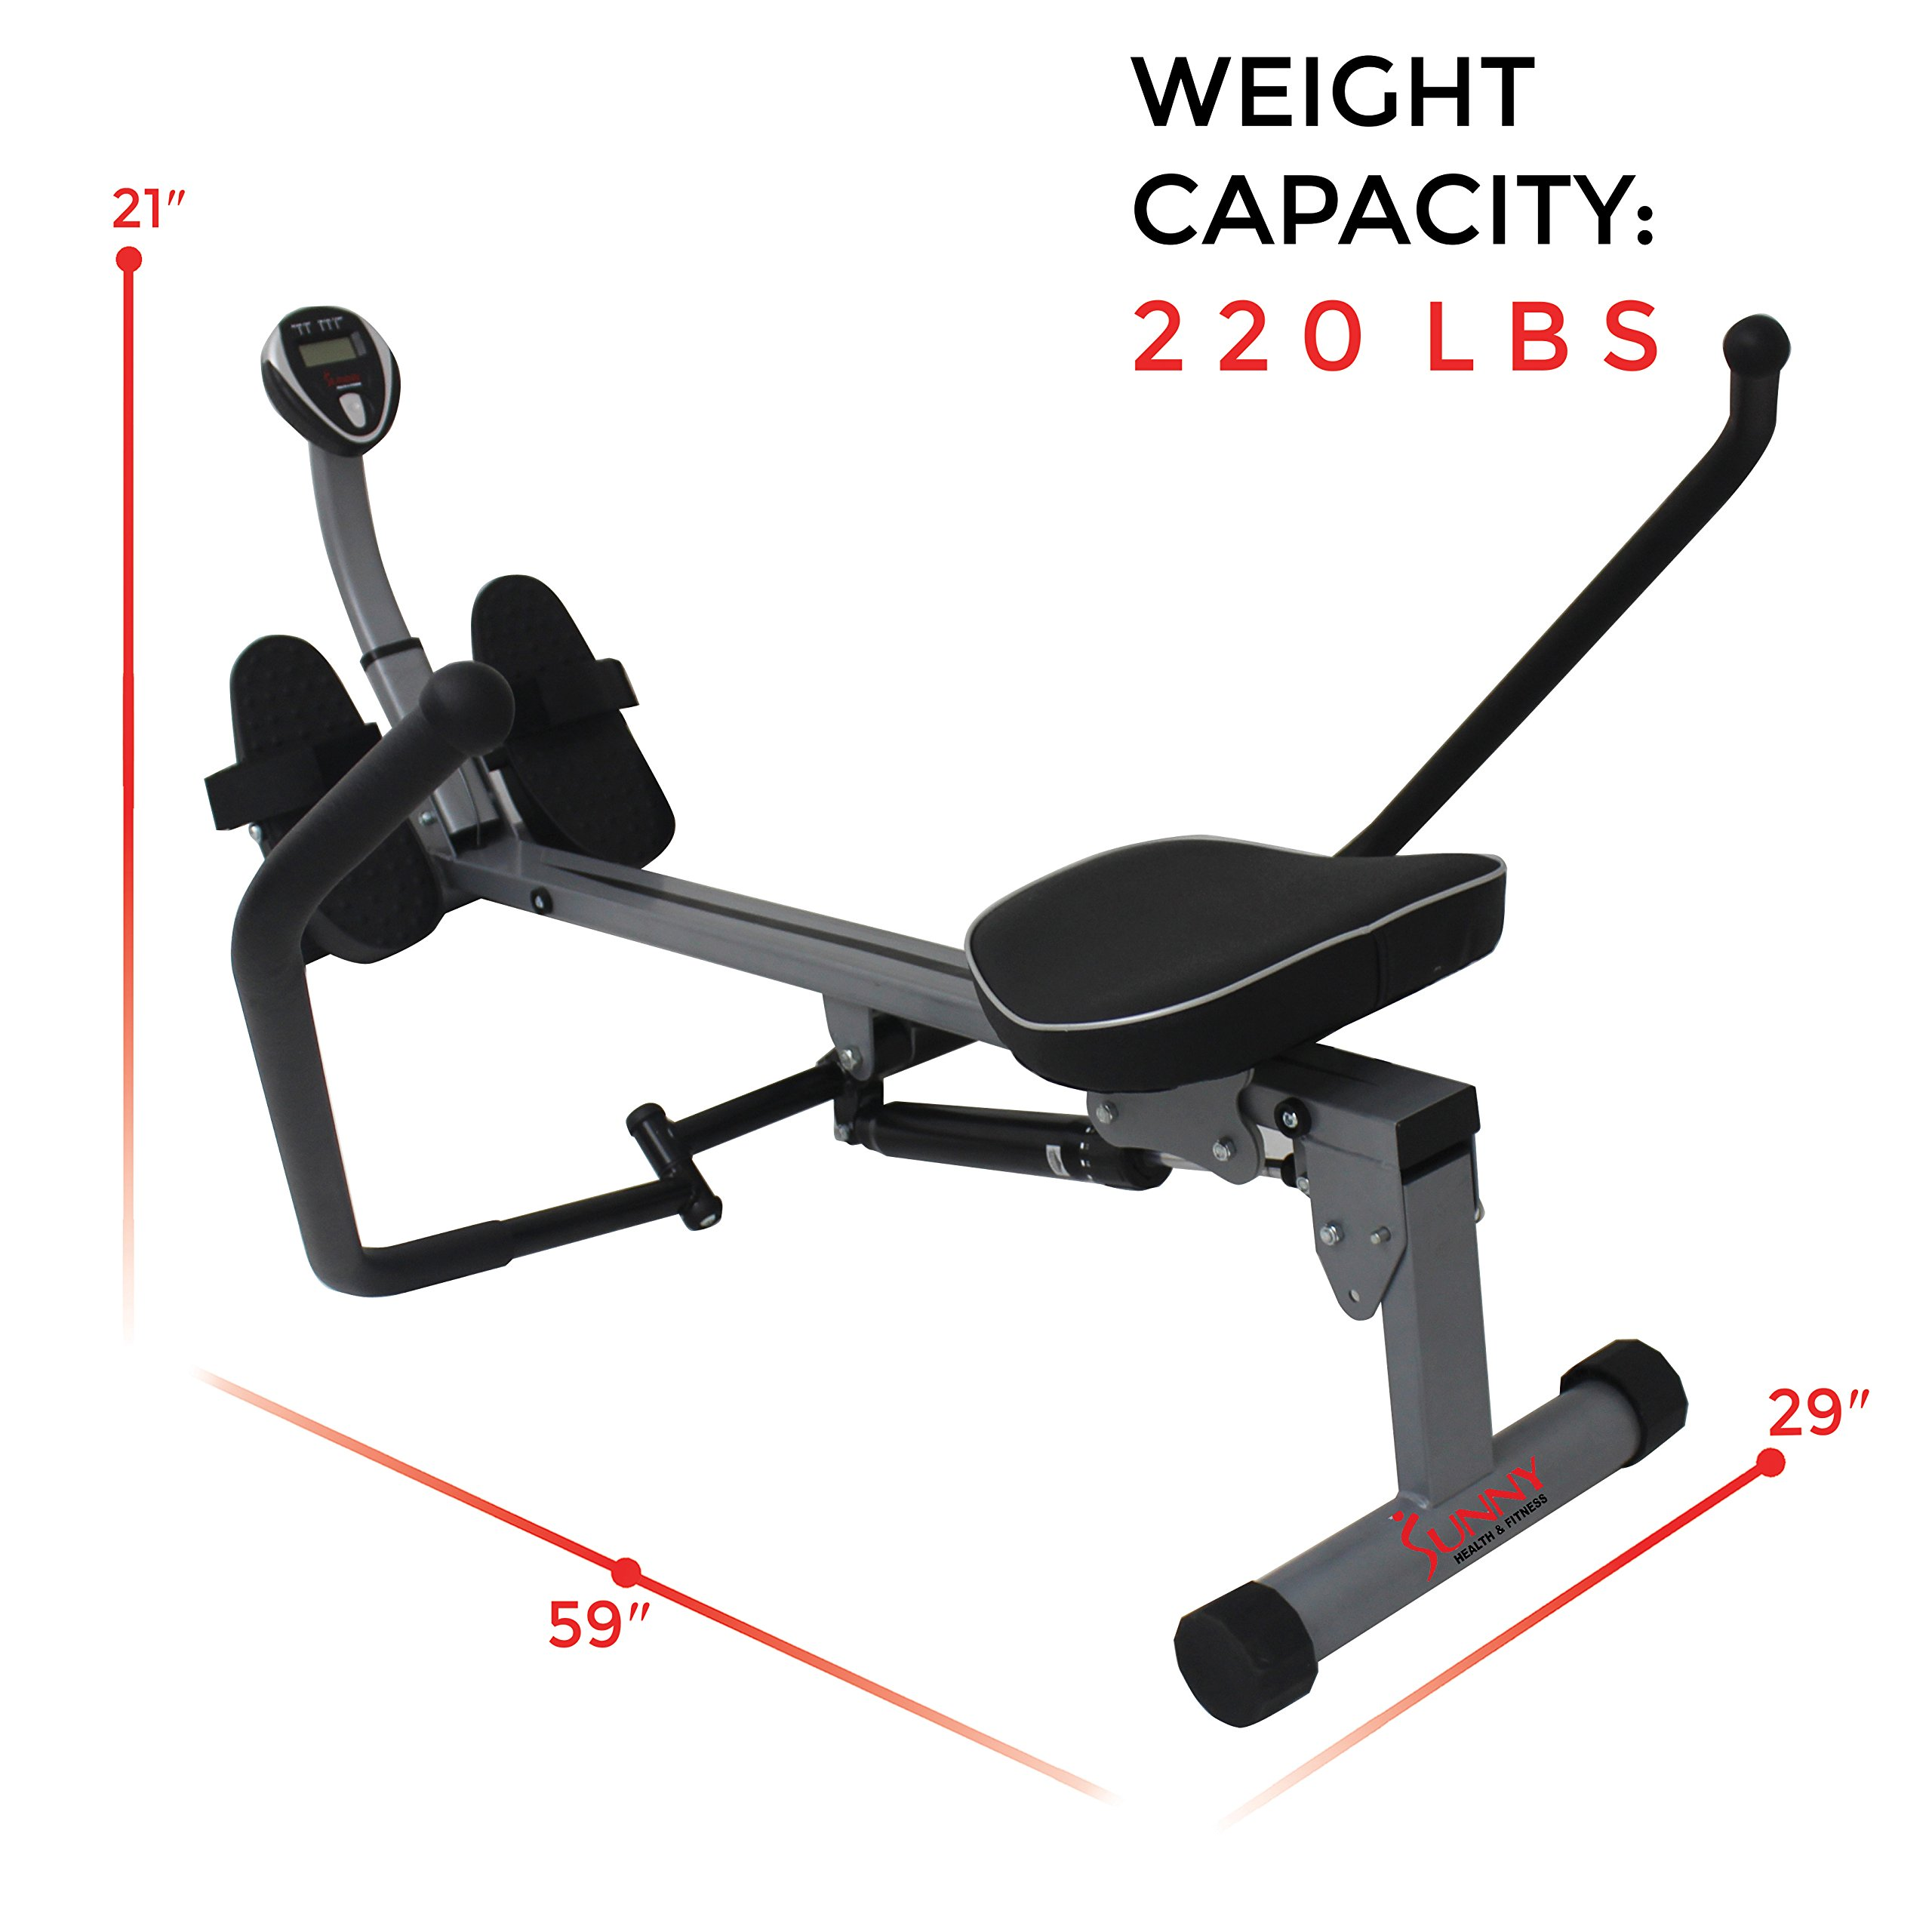 Sunny Health & Fitness SF-RW1410 Rowing Machine Rower with Full Motion Arms and LCD Monitor by Sunny Health & Fitness (Image #13)